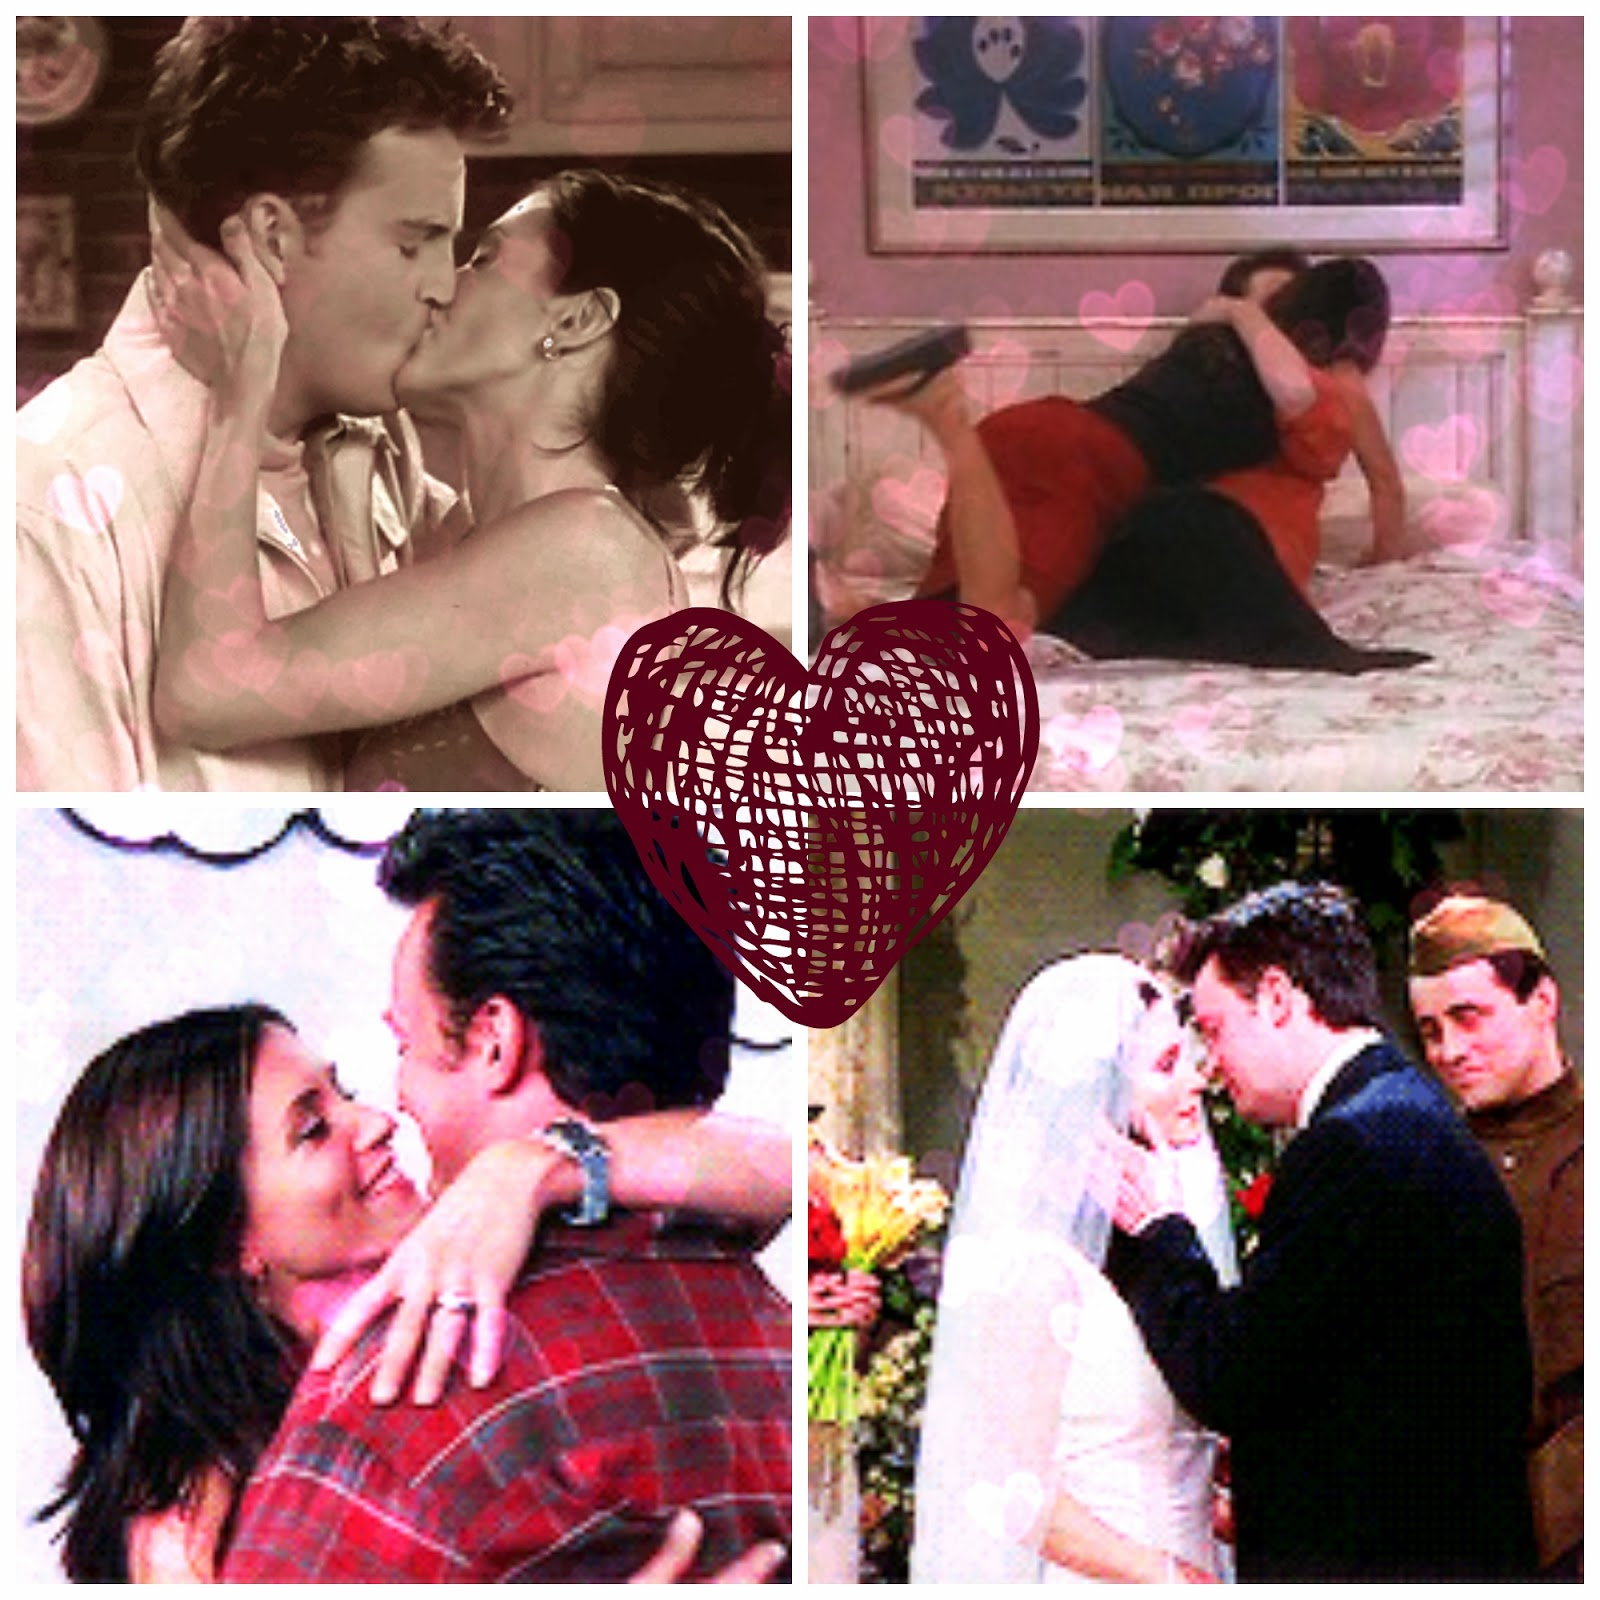 Besos de Chandler y Monica de la serie Friends.